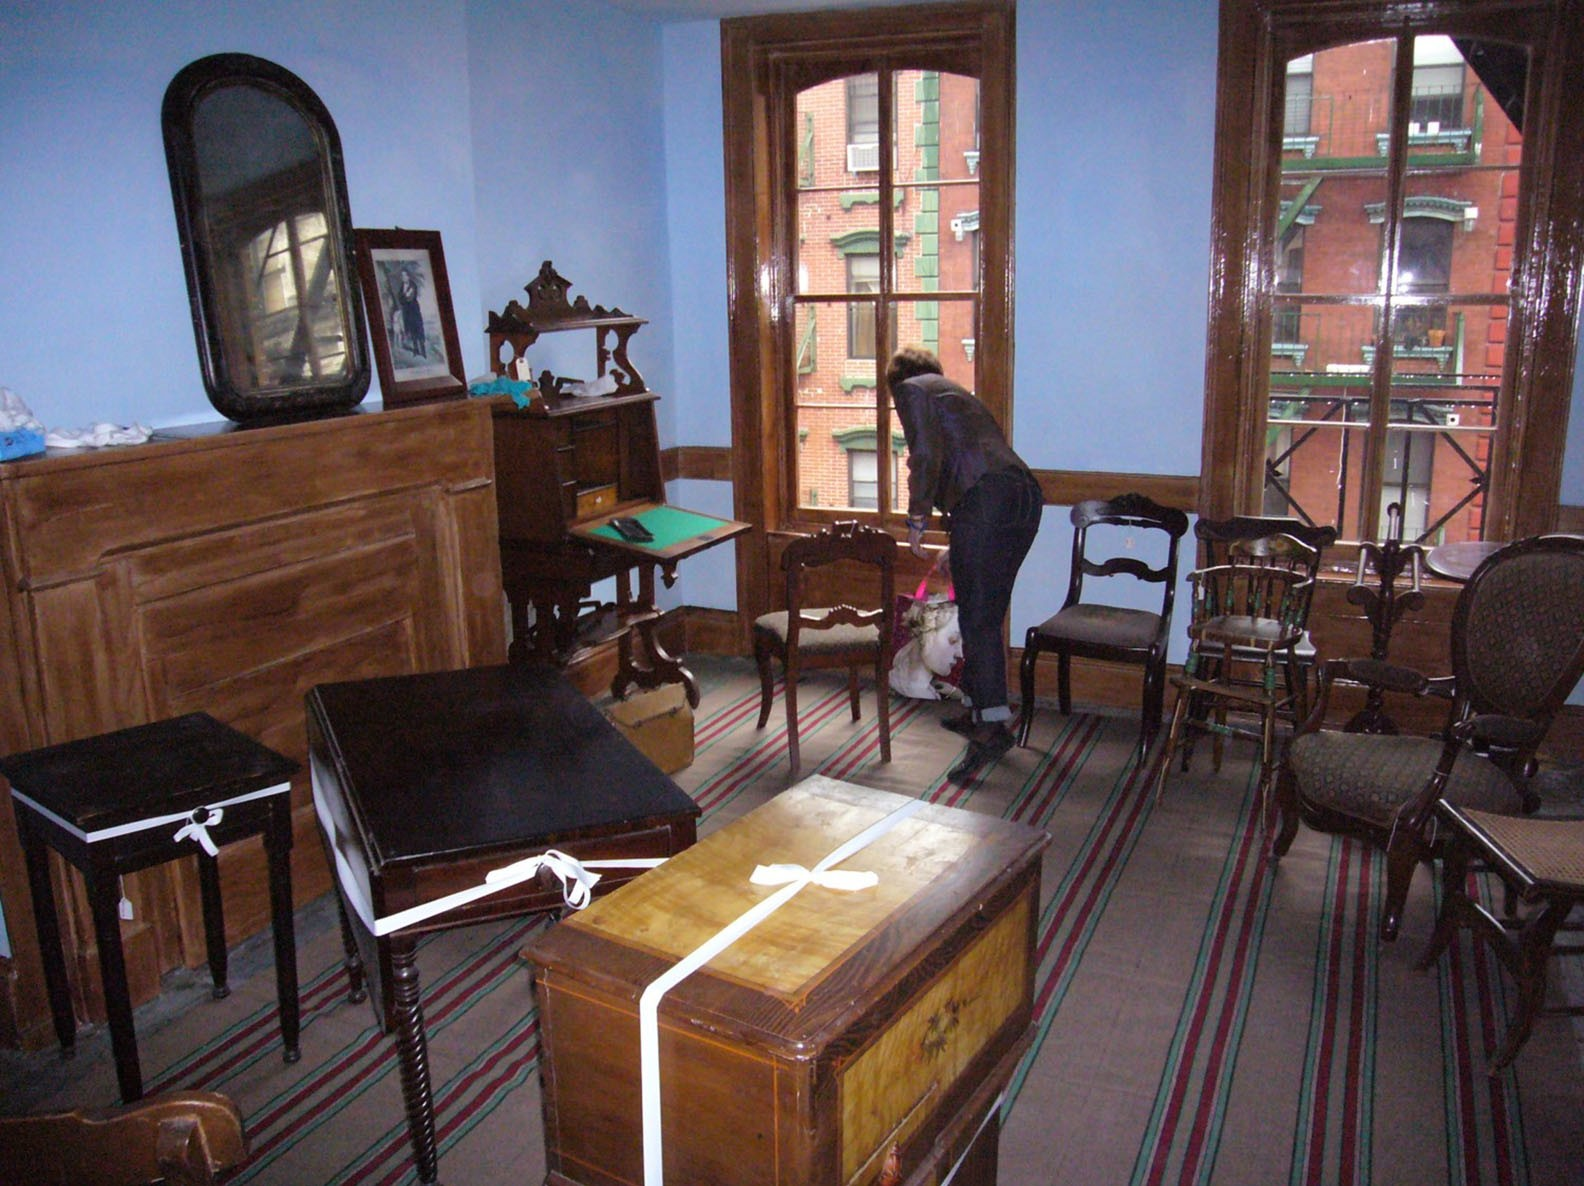 A behind-the-scenes progress shot of furniture and artifacts being set up for an apartment exhibit